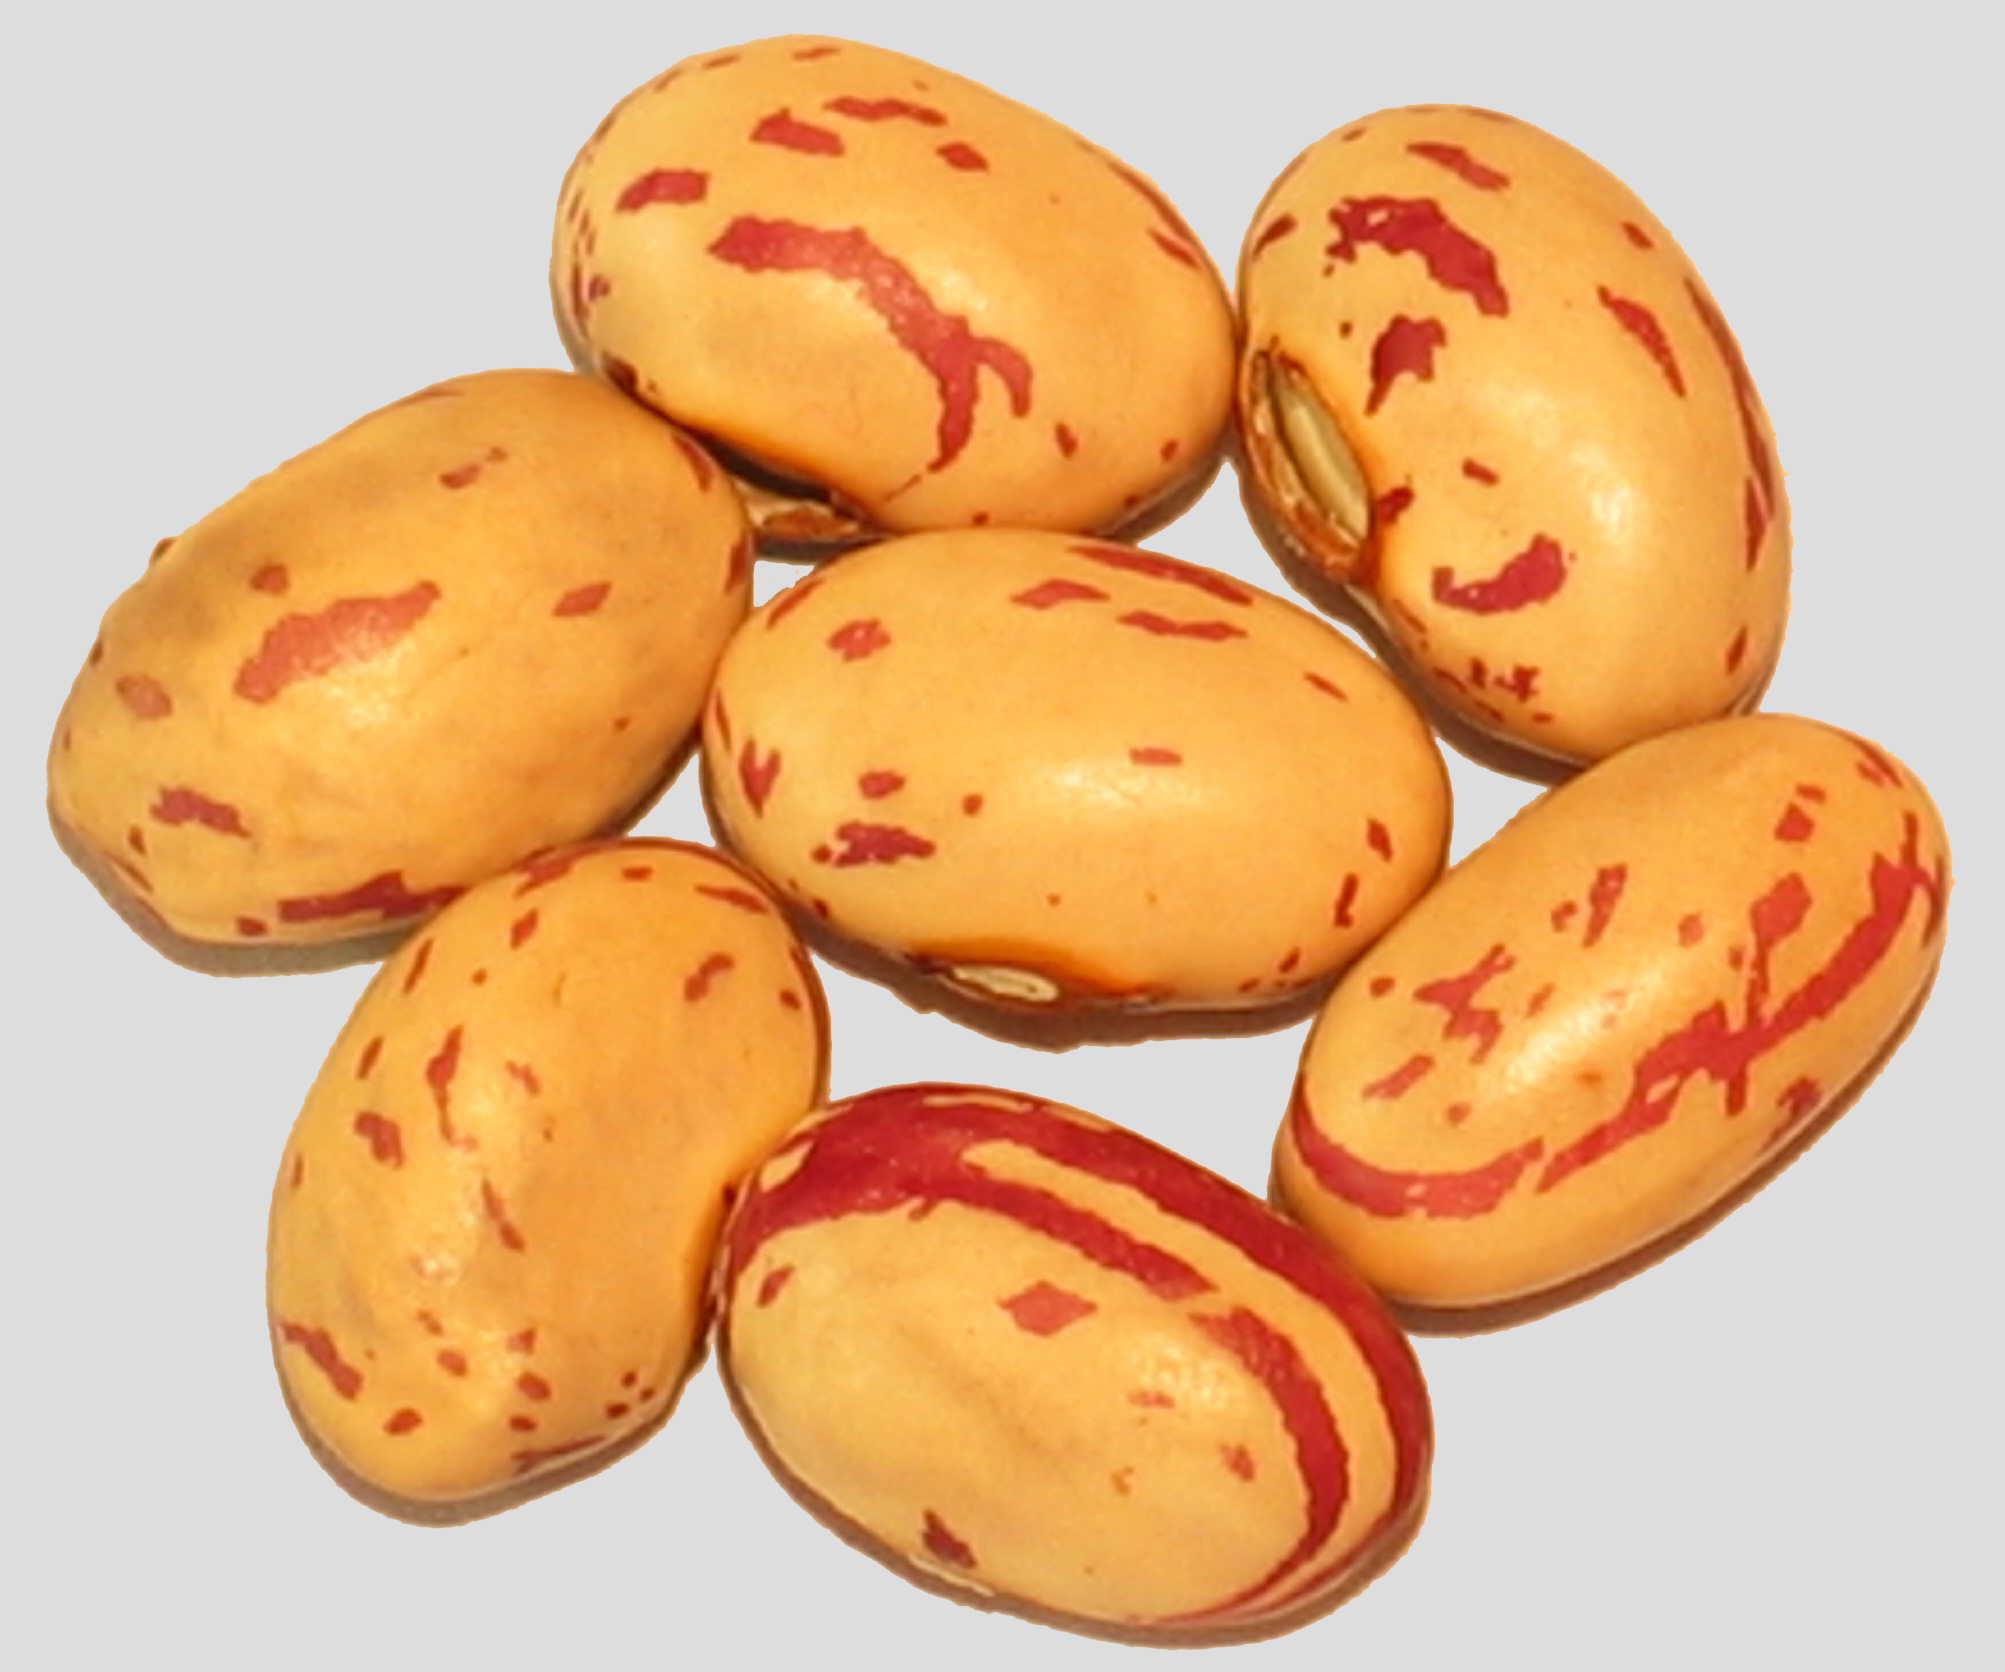 image of Gabarone Sugar beans